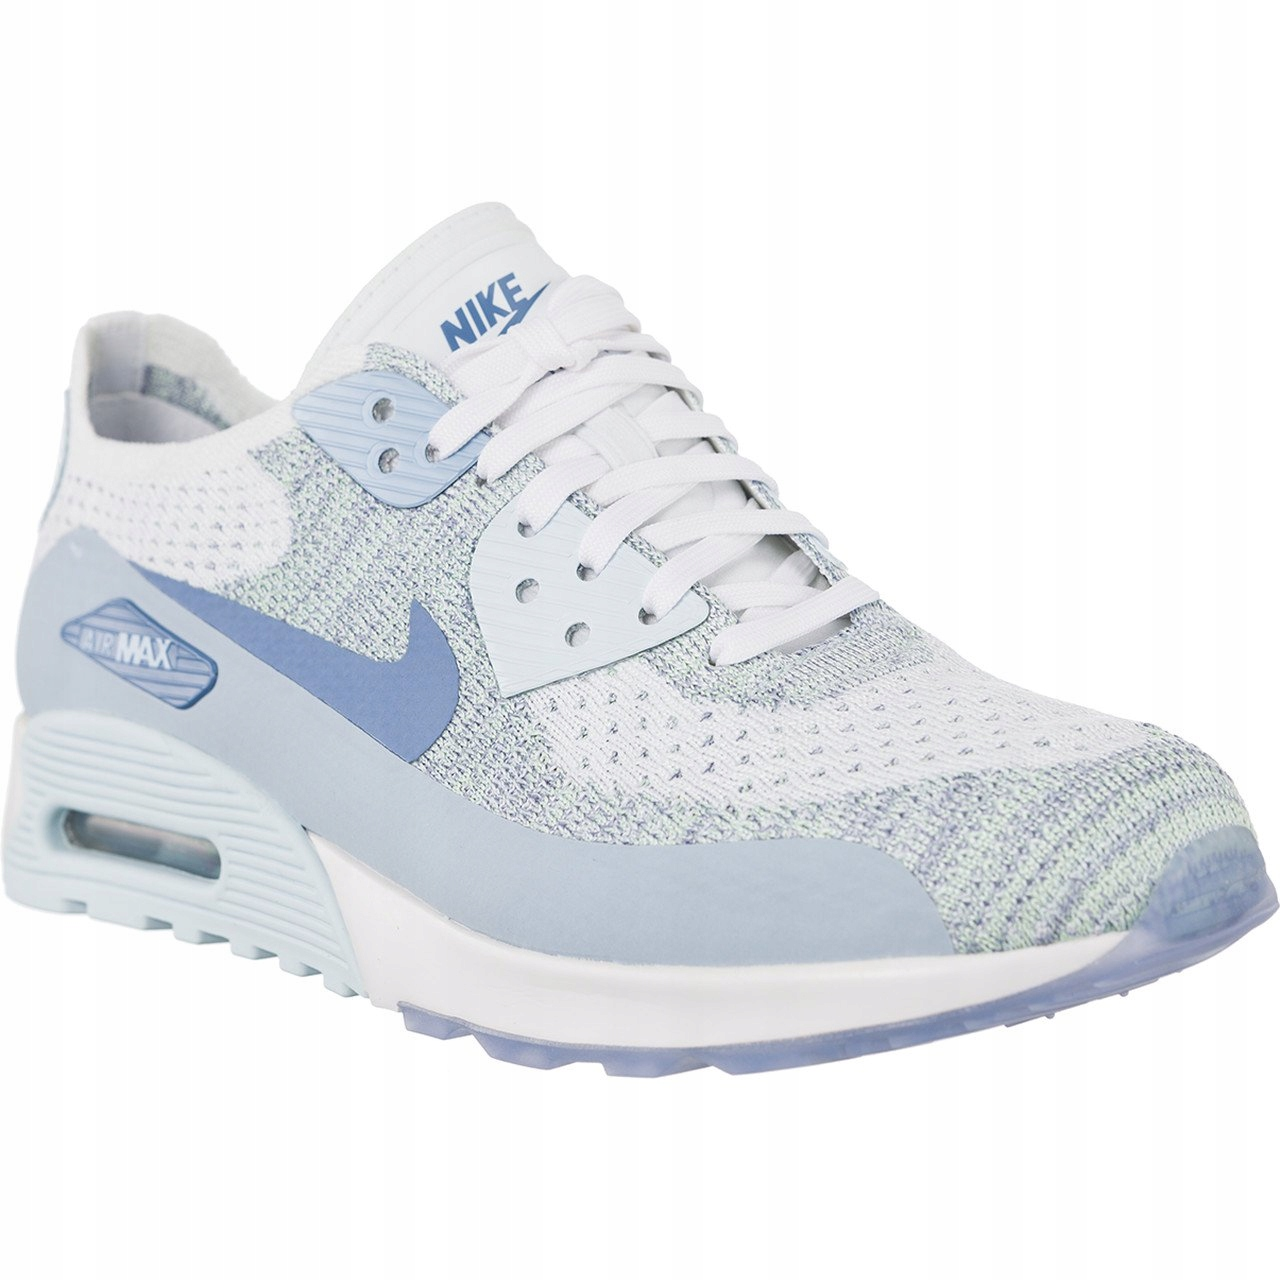 DAMSKIE BUTY NIKE AIR MAX 90 ULTRA 2.0 SE 38,5 HIT